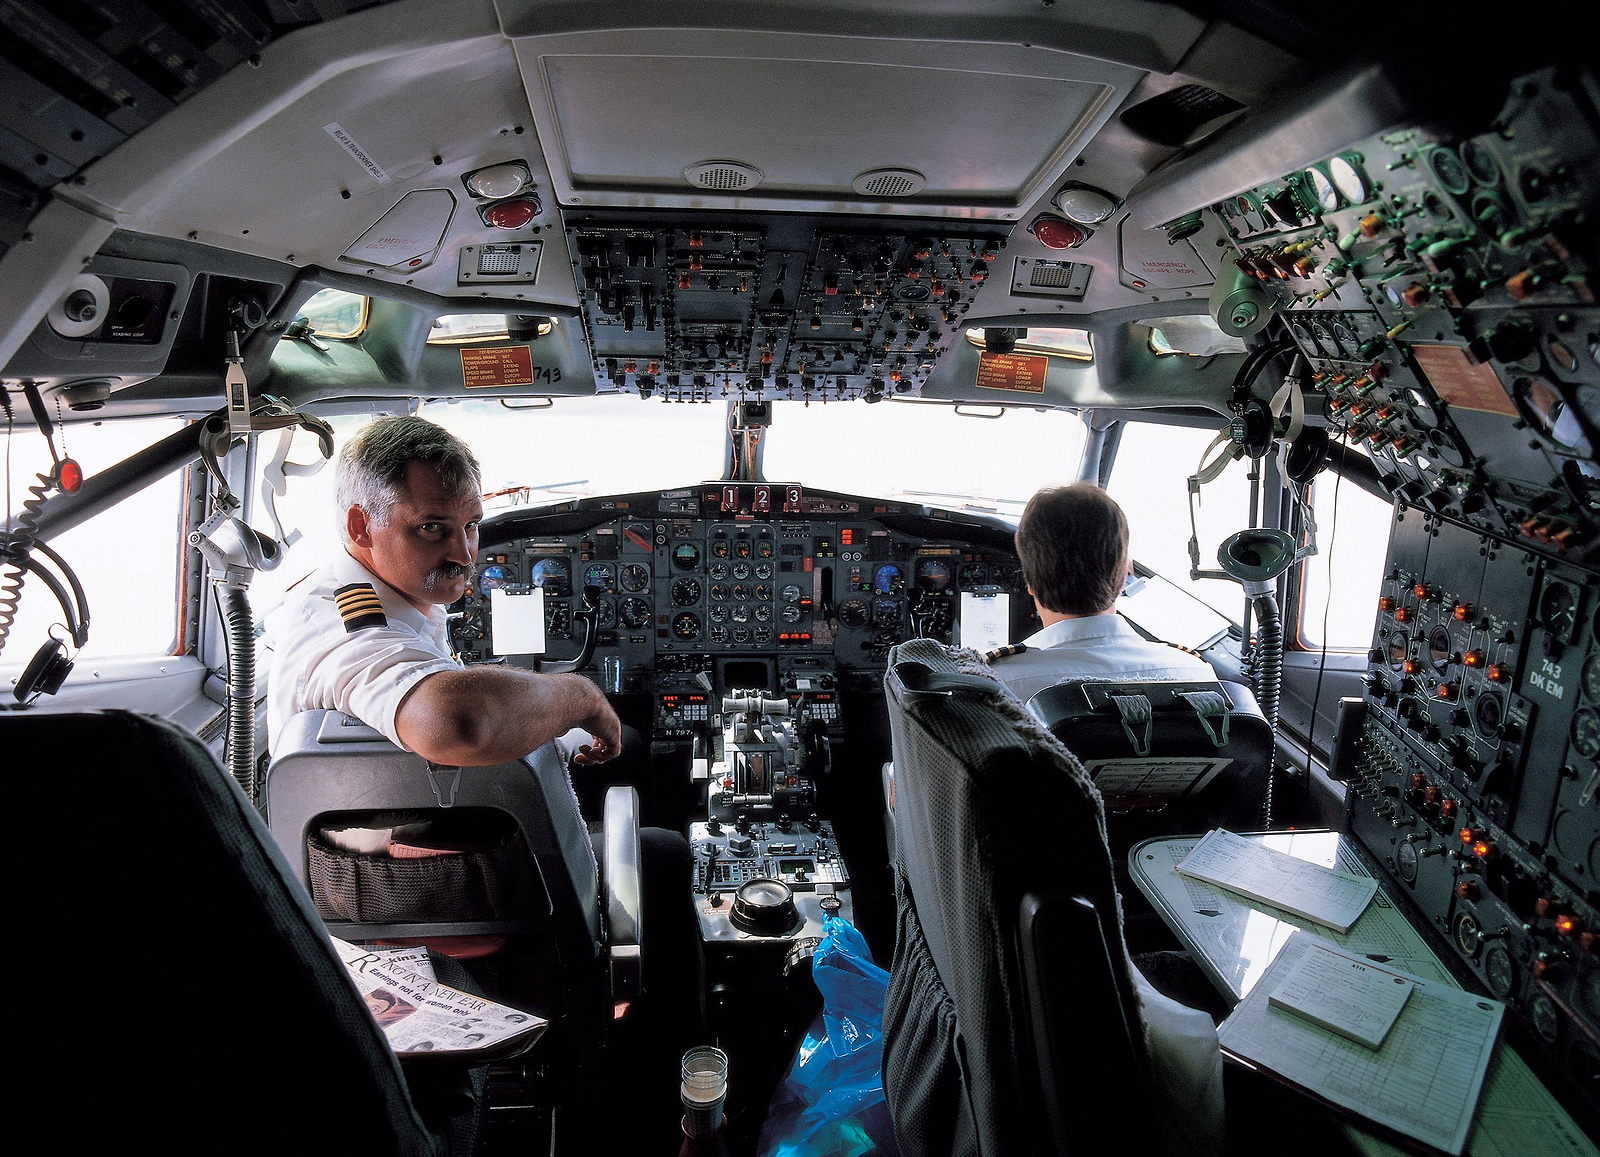 bigstock-Plane-With-Pilot-430038